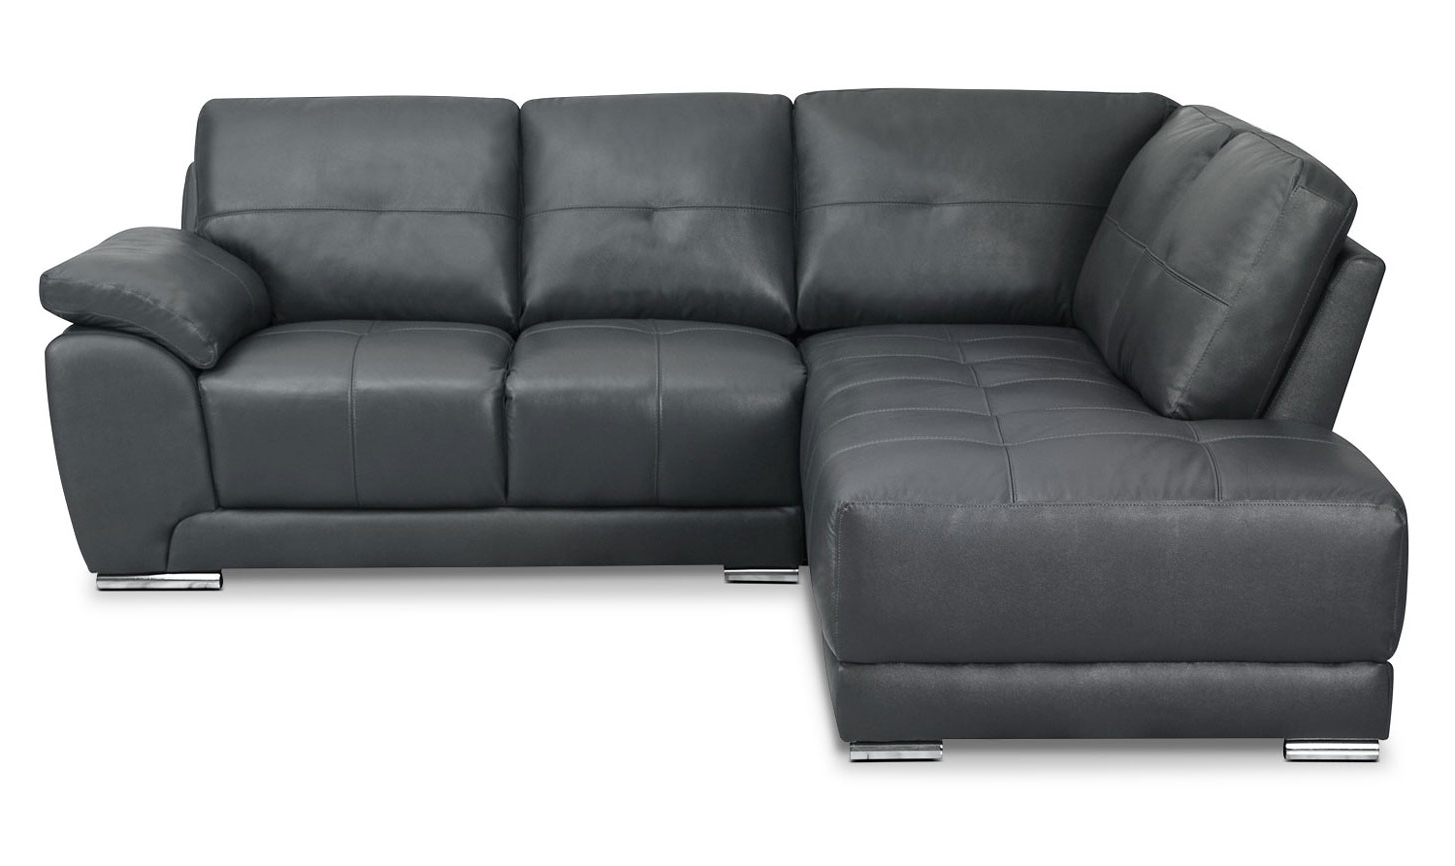 Trendy Sectional Sofa: Ultimate Gallery Of The Brick Sectional Sofa Bed Intended For The Brick Sectional Sofas (View 18 of 20)